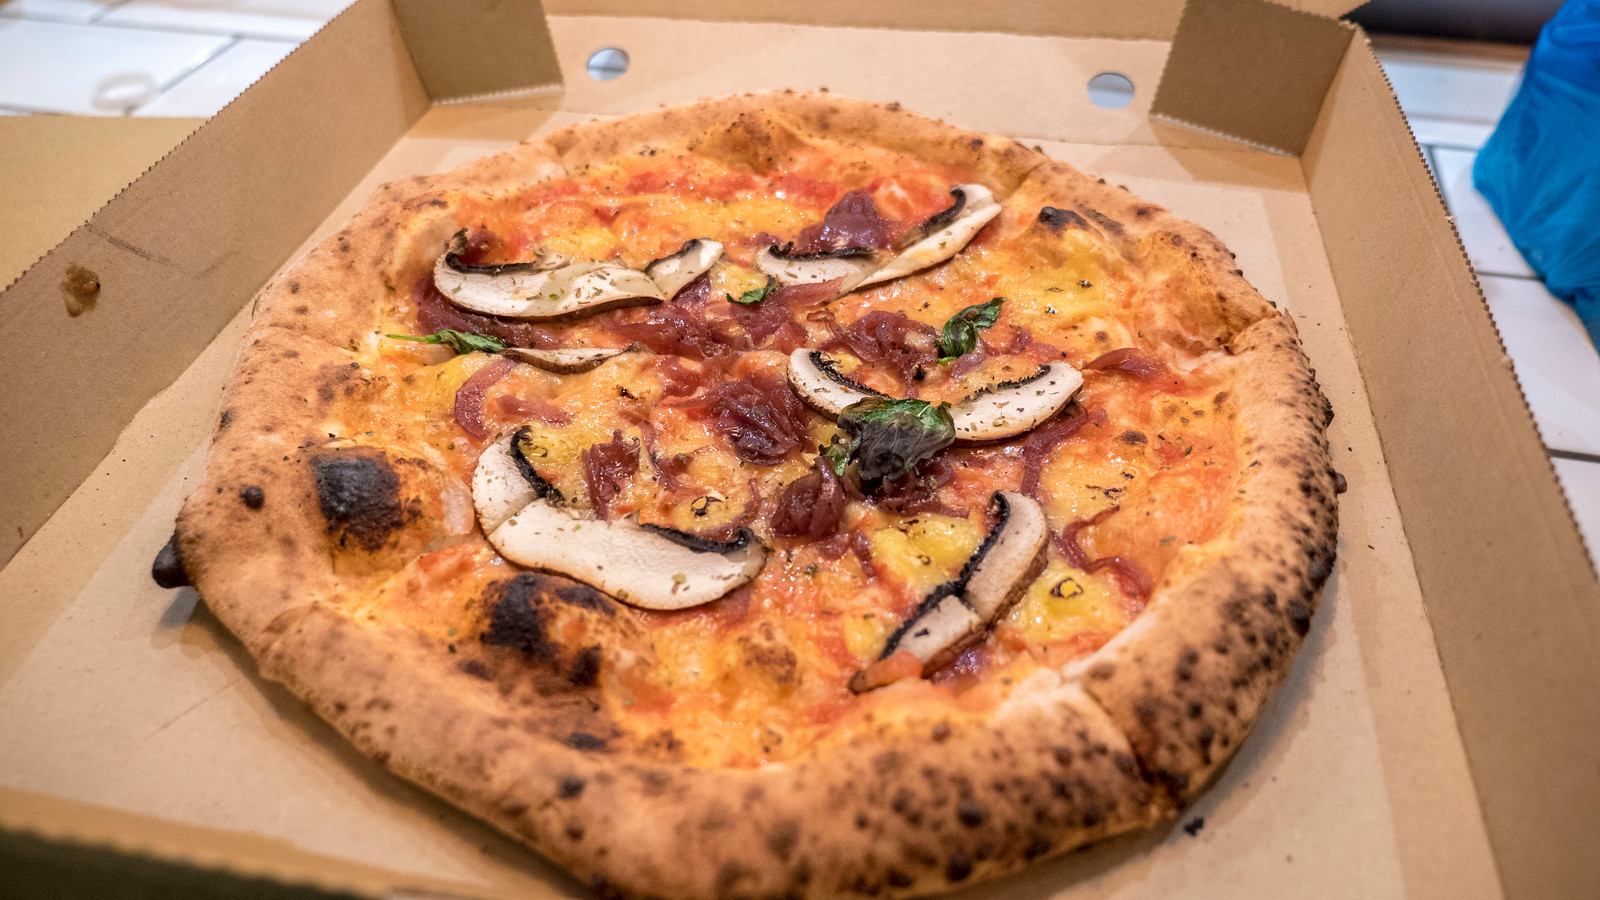 Buffalo Soldier vegan pizza from The Dough Bros - Vegan Galway Restaurant and Dining Guide